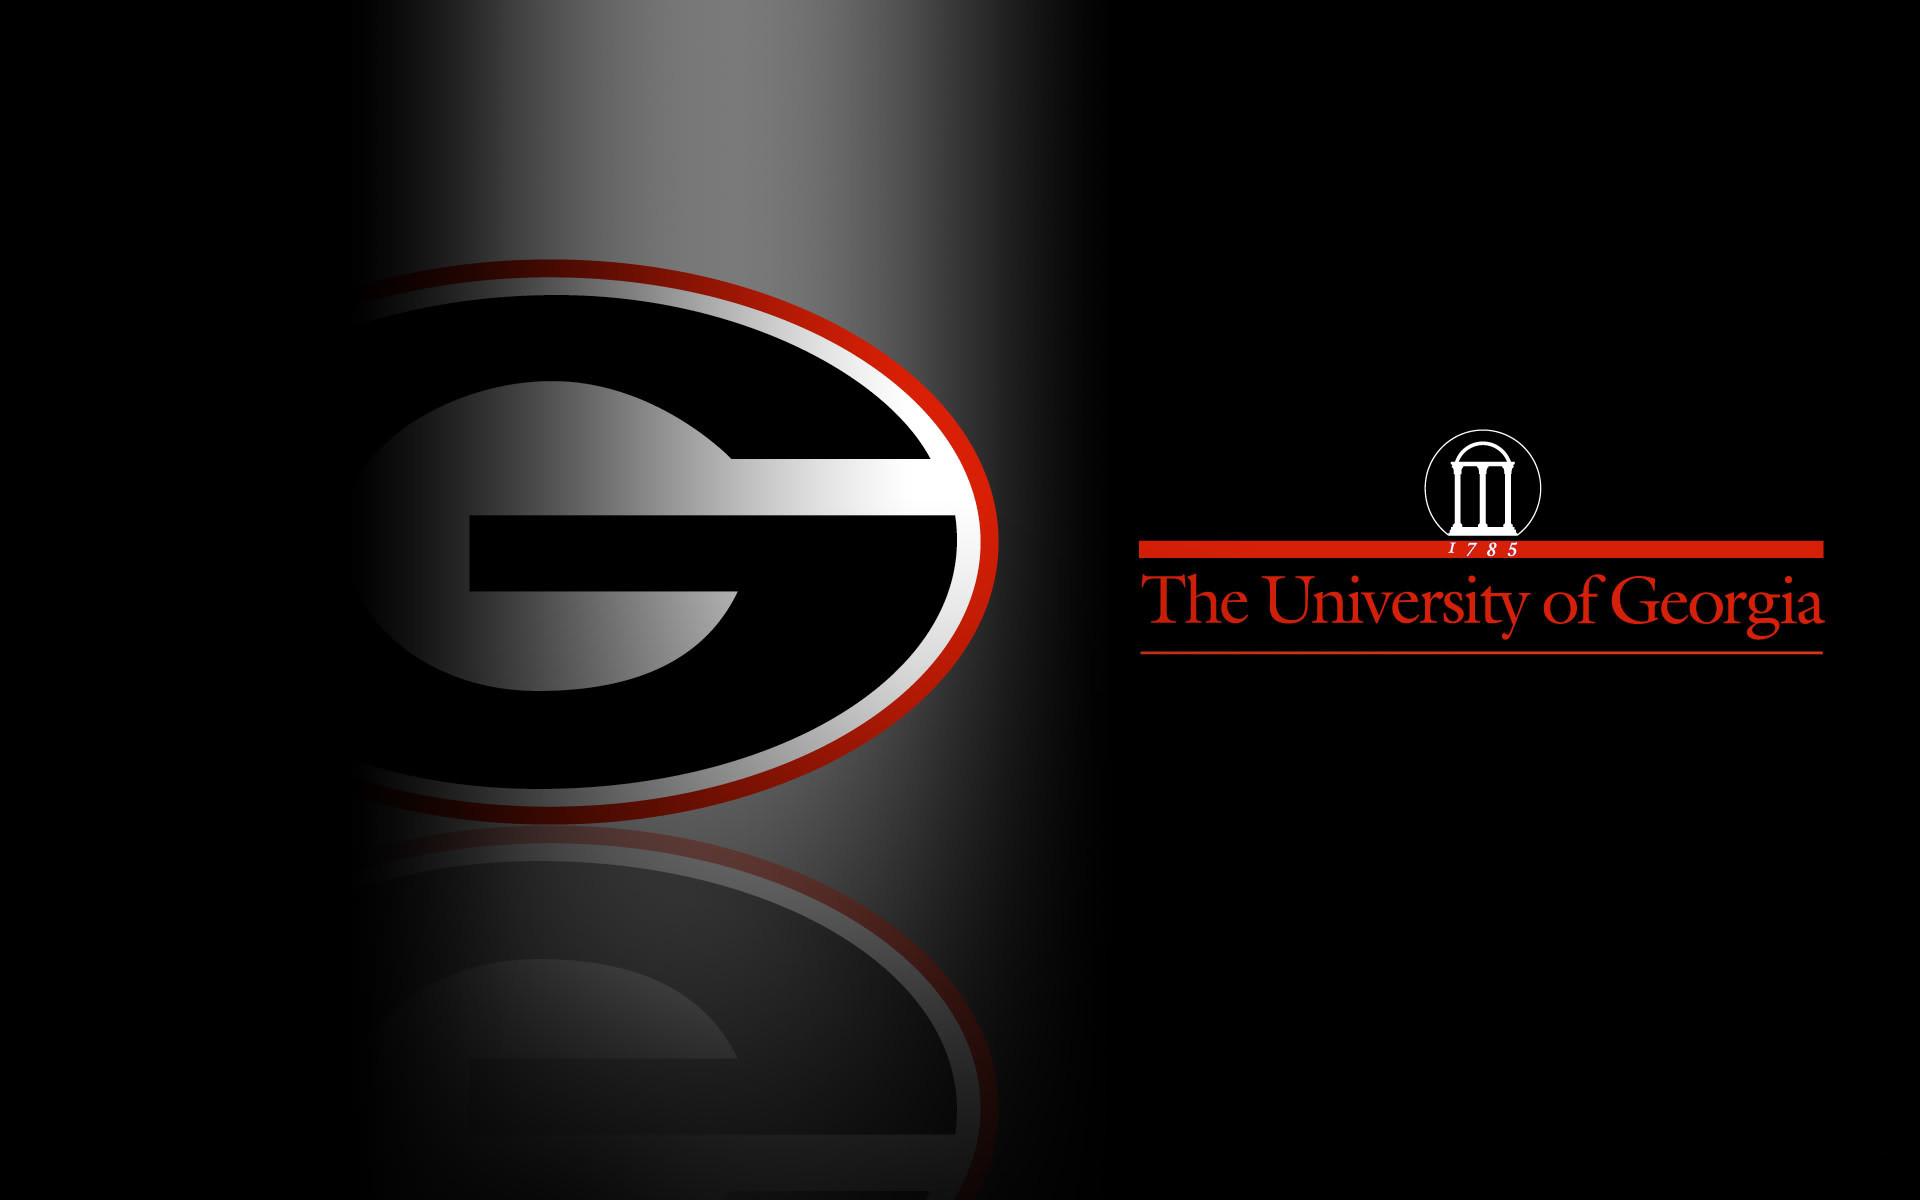 1920x1200 university of georgia wallpaper University of Georgia Wallpapers, Browser  Themes and More - Brand Thunder